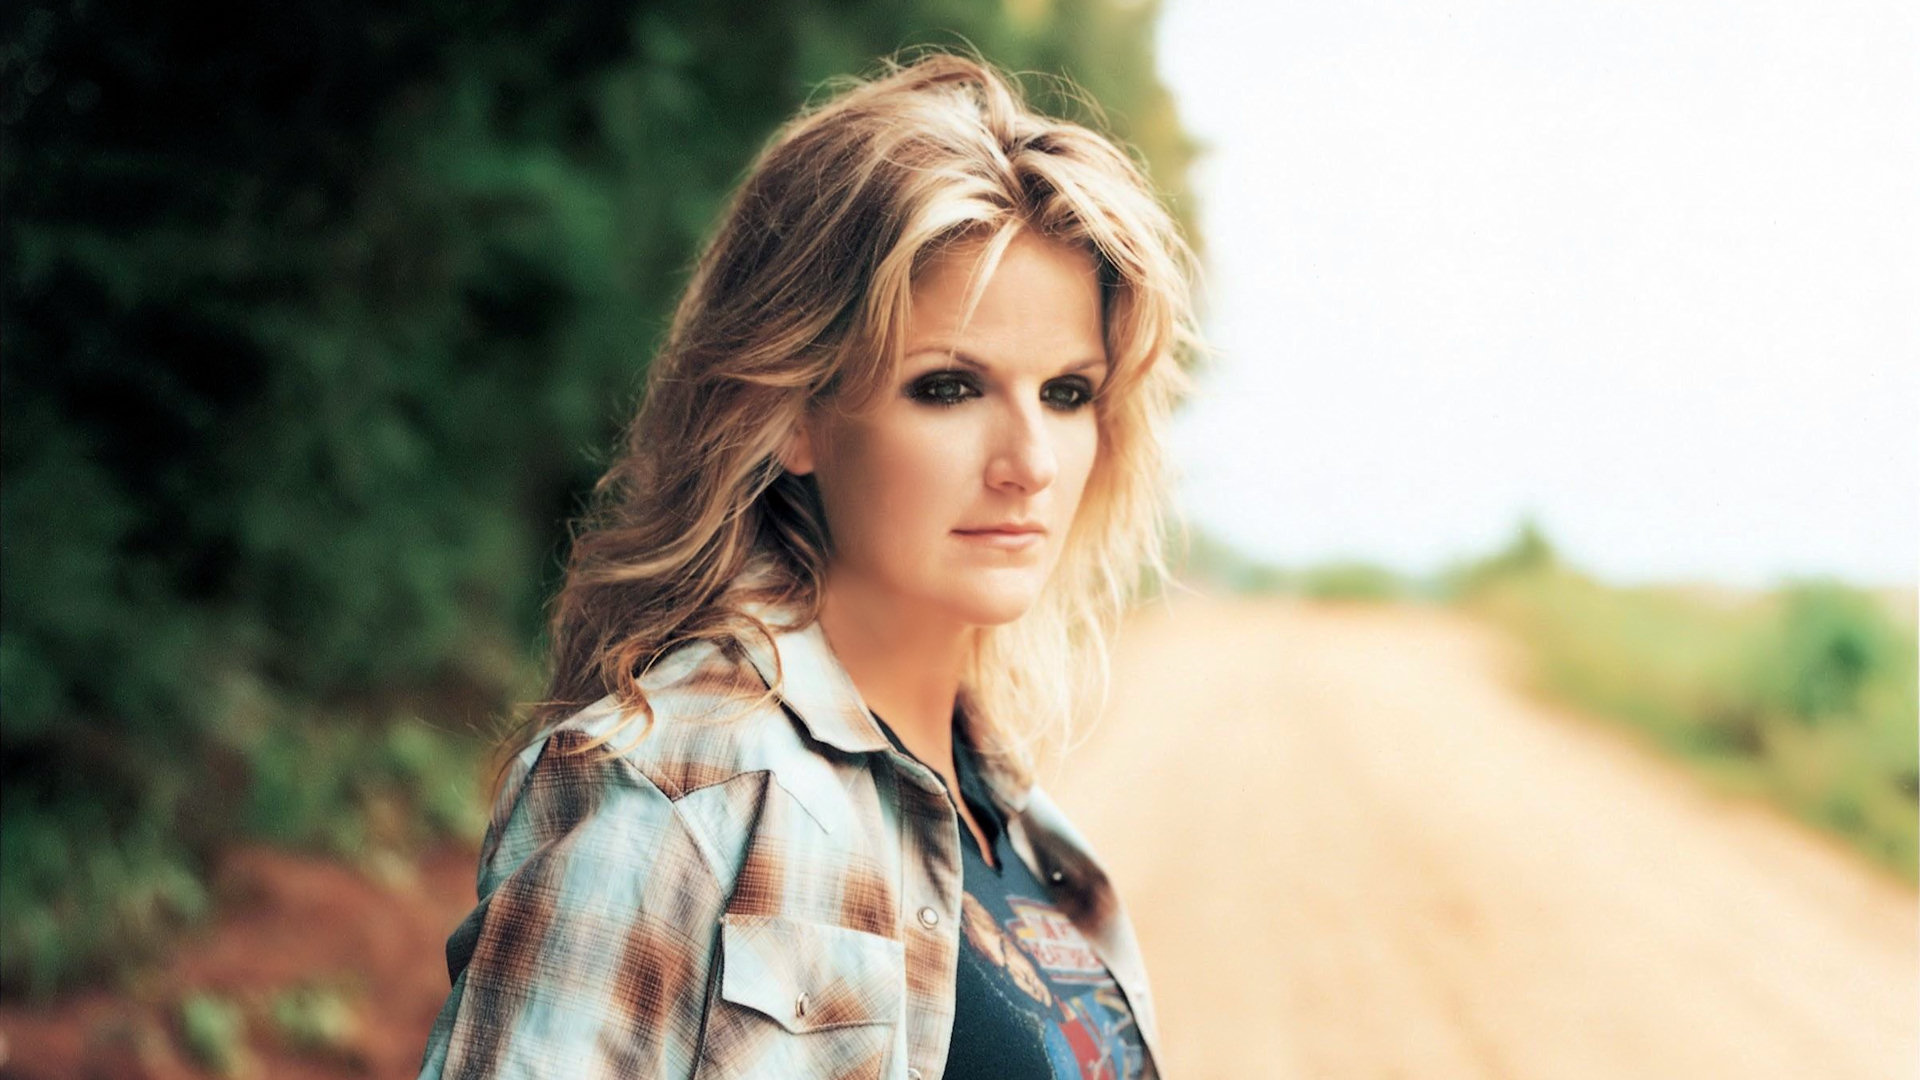 Girl With Guitar Hd Wallpaper 5 Trisha Yearwood Hd Wallpapers Background Images